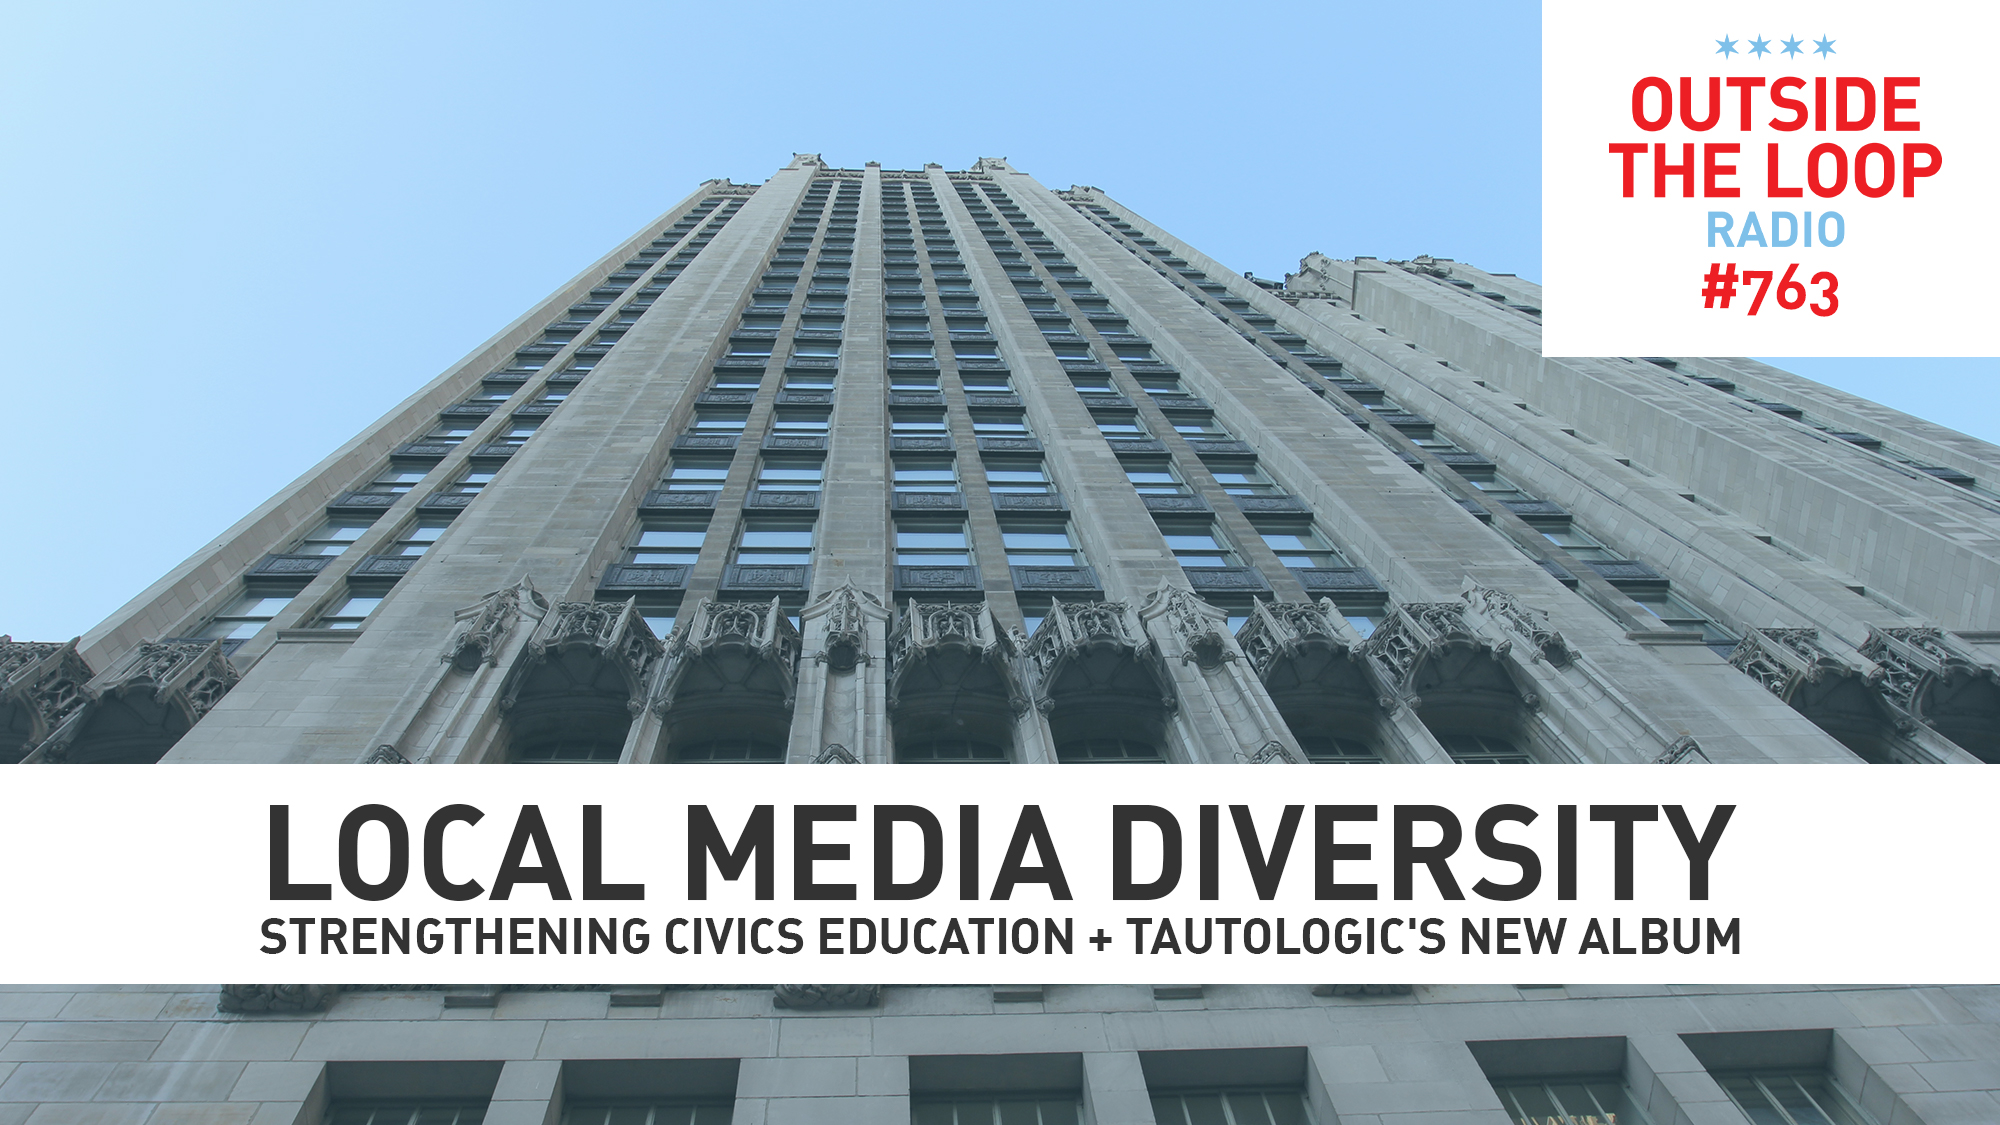 Looking up at the Tribune Tower and pondering the future of media diversity. (Photo credit: Mike Stephen/WGN Radio)